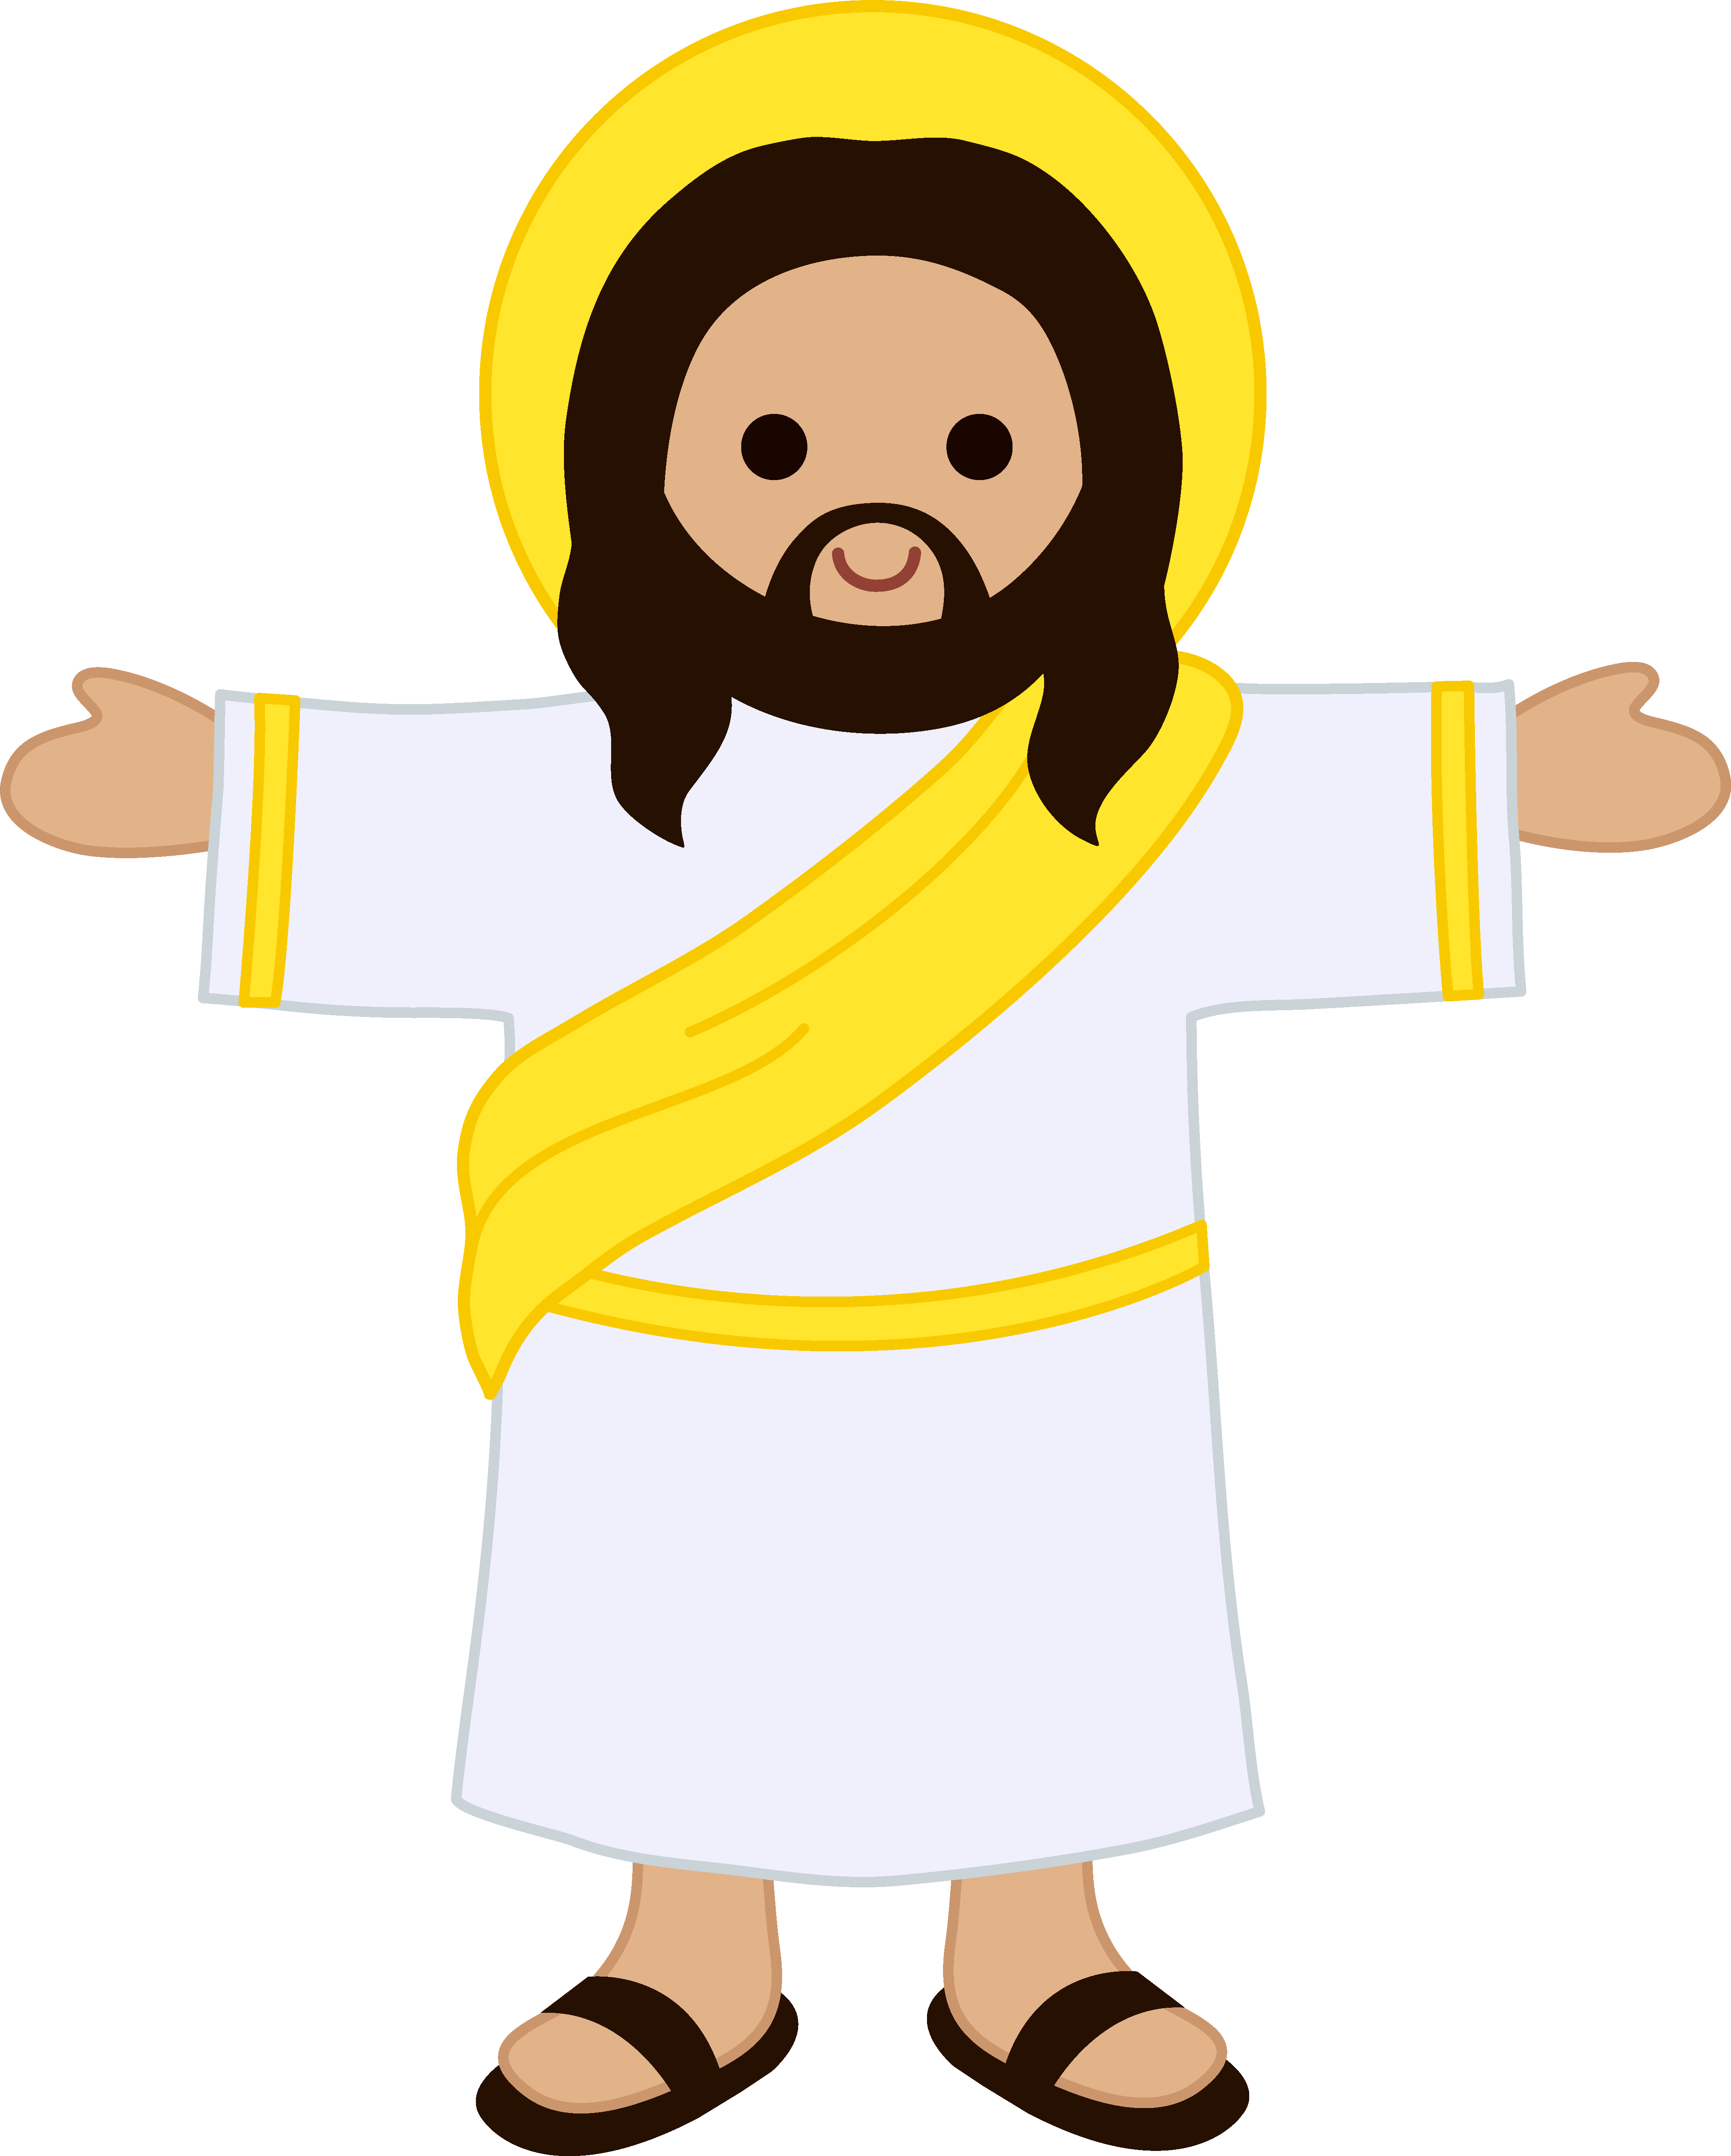 Jesus drawing at getdrawings. Transparent god cartoon picture freeuse download